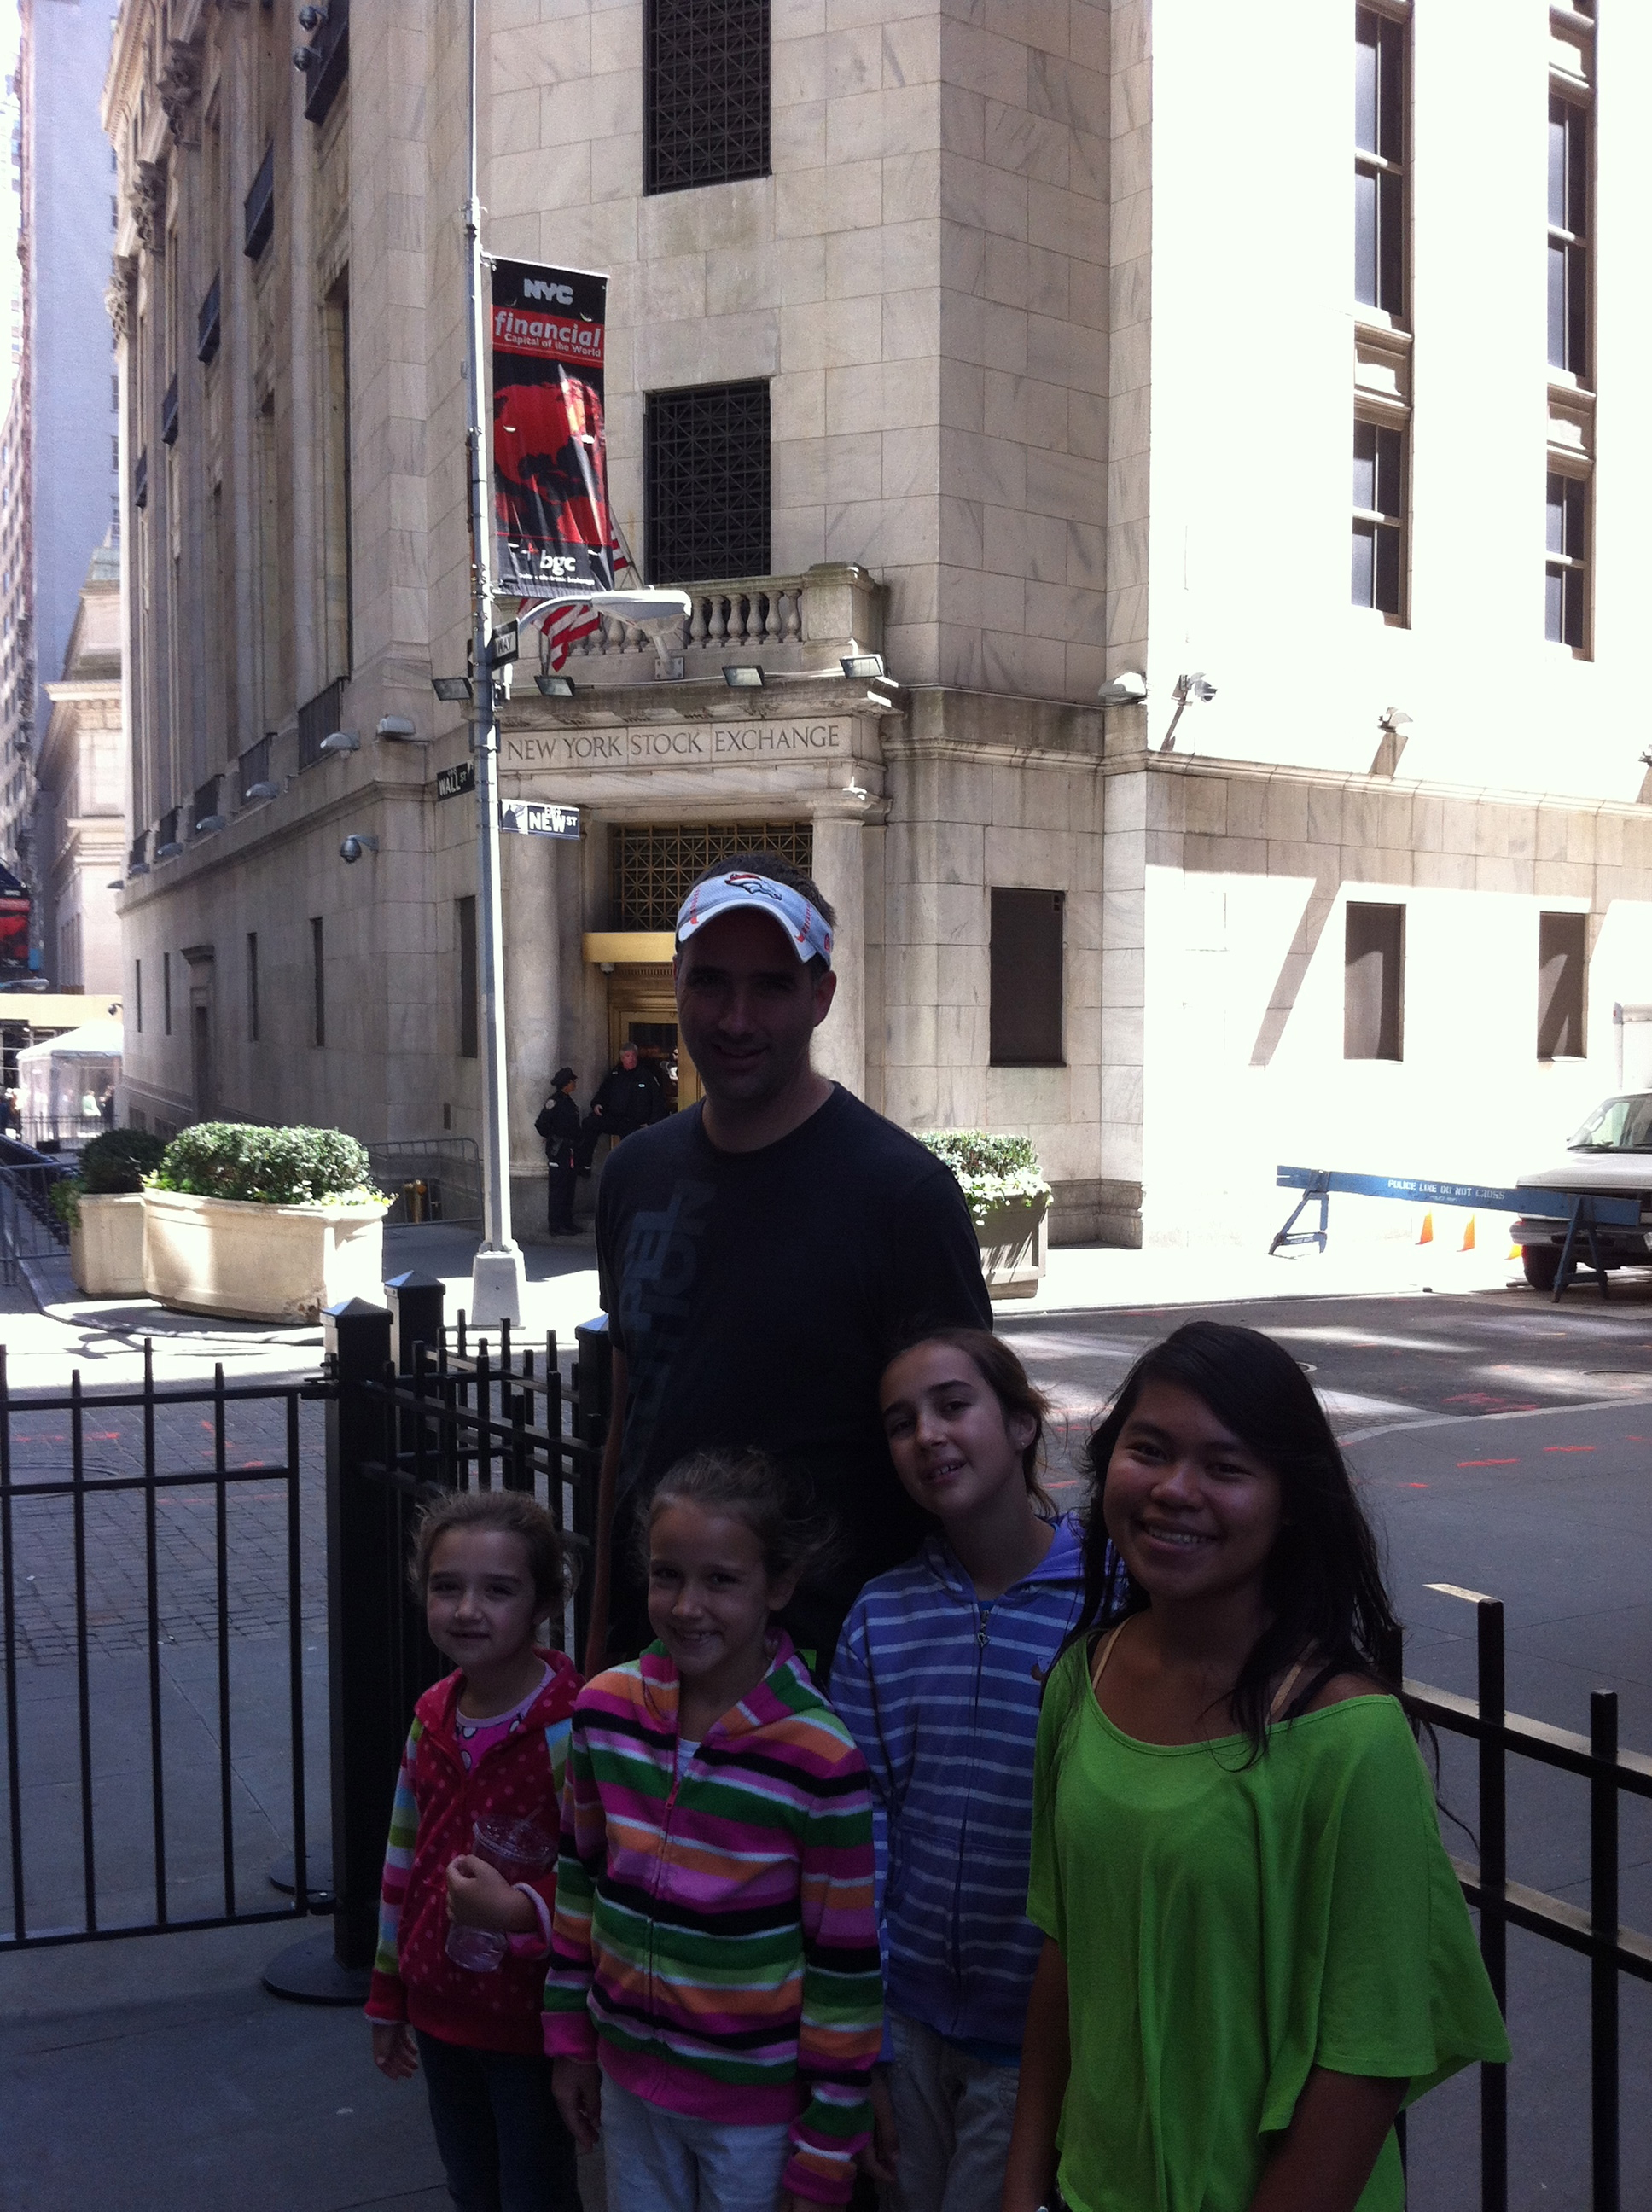 In front of the NYSE.